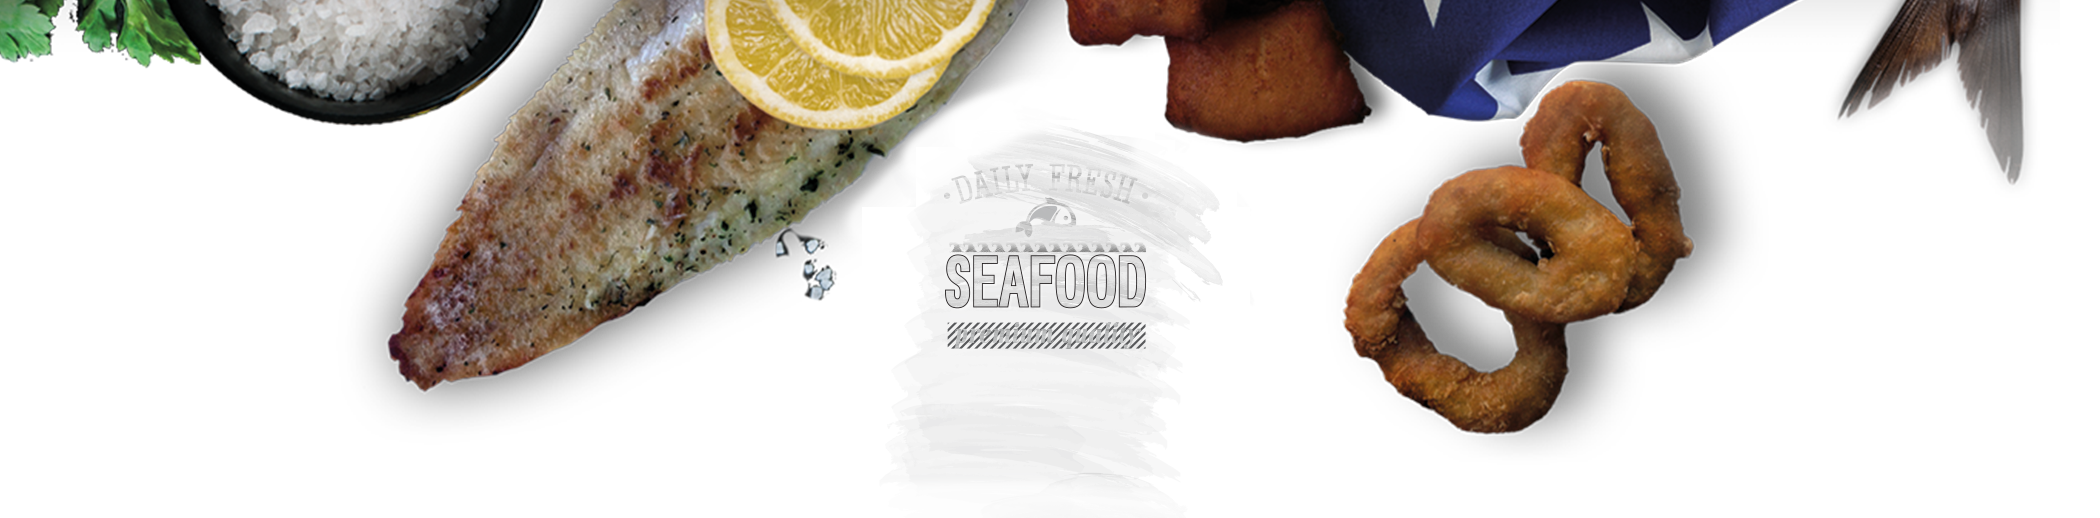 Daily fresh fish abc restaurant velp for Daily fresh fish